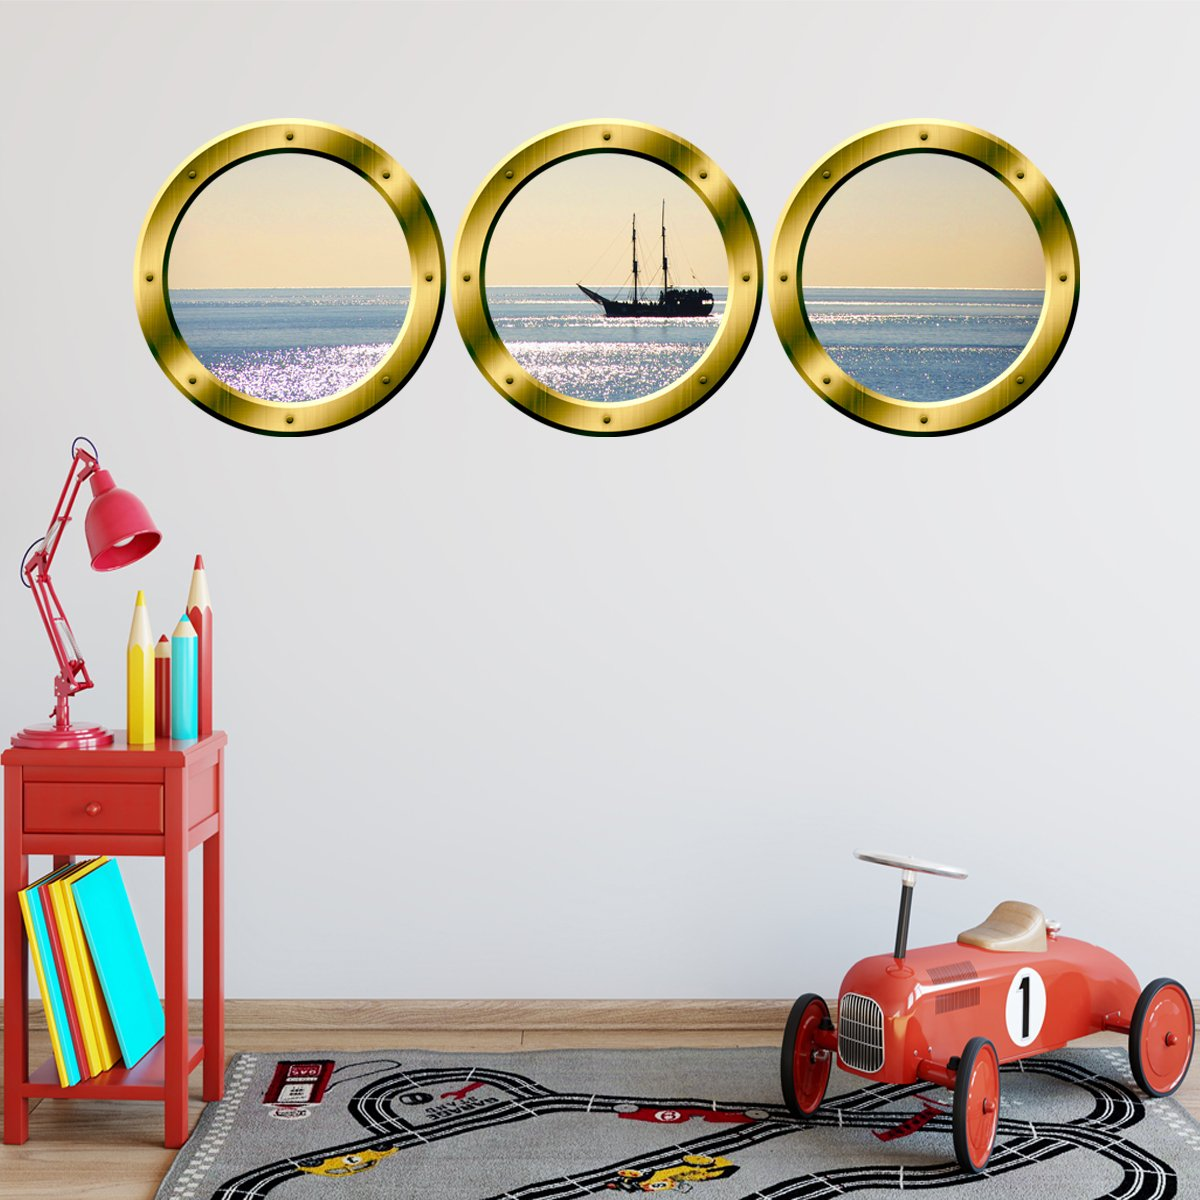 VWAQ Cruise Ship Gold Window Porthole Peel & Stick Wall Decals - GPW6 - VWAQ Vinyl Wall Art Quotes and Prints